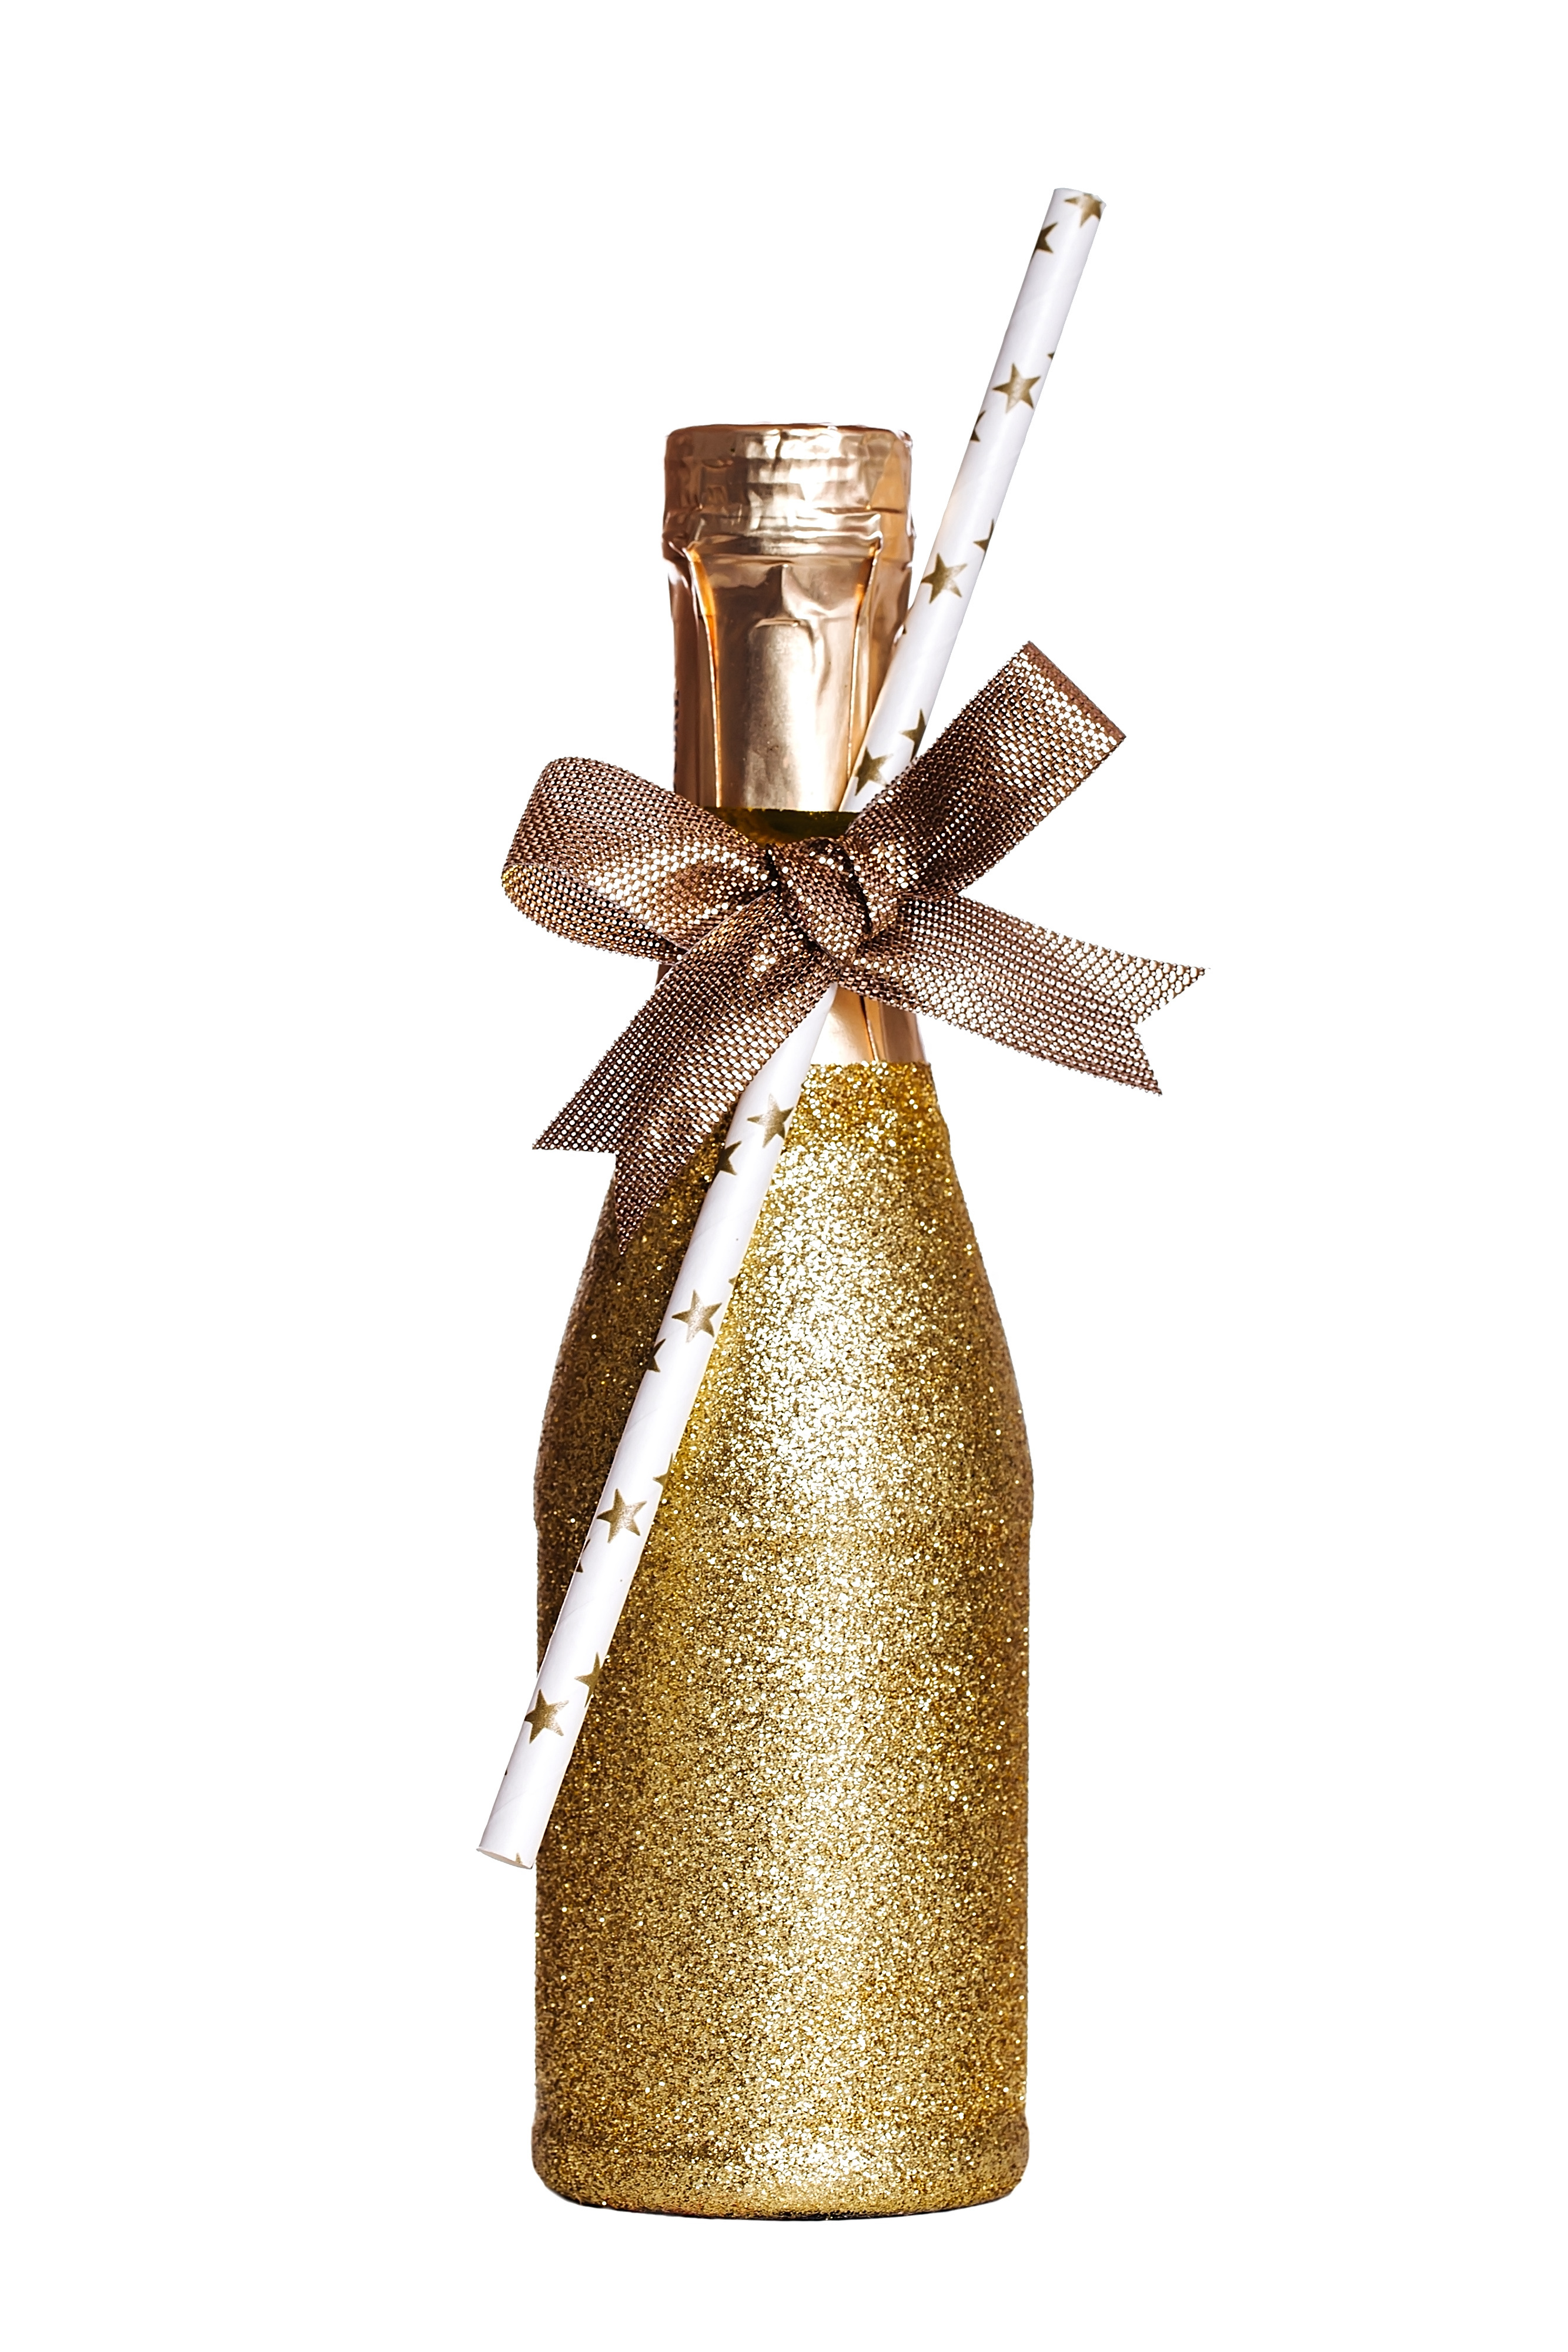 Glitter Champagne bottle for 1920s murder mystery party